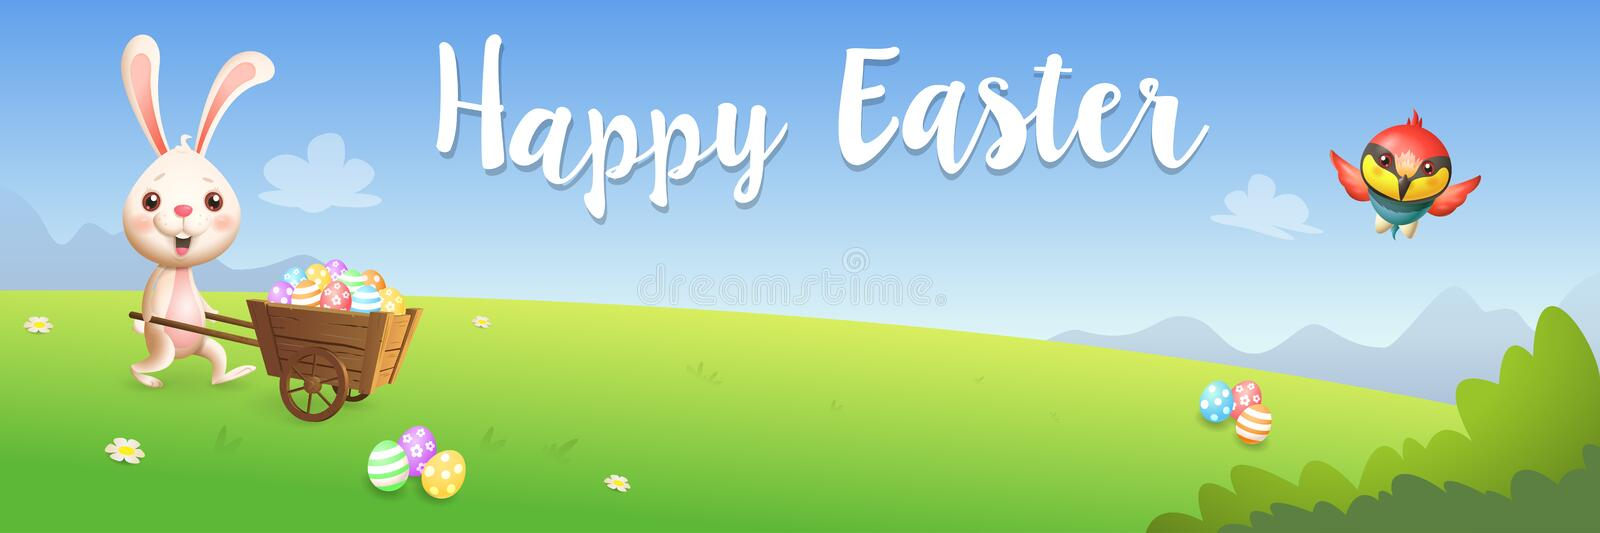 Easter greeting card - bunny carrying cart with decorated eggs on spring landscape - banner vector illustration vector illustration